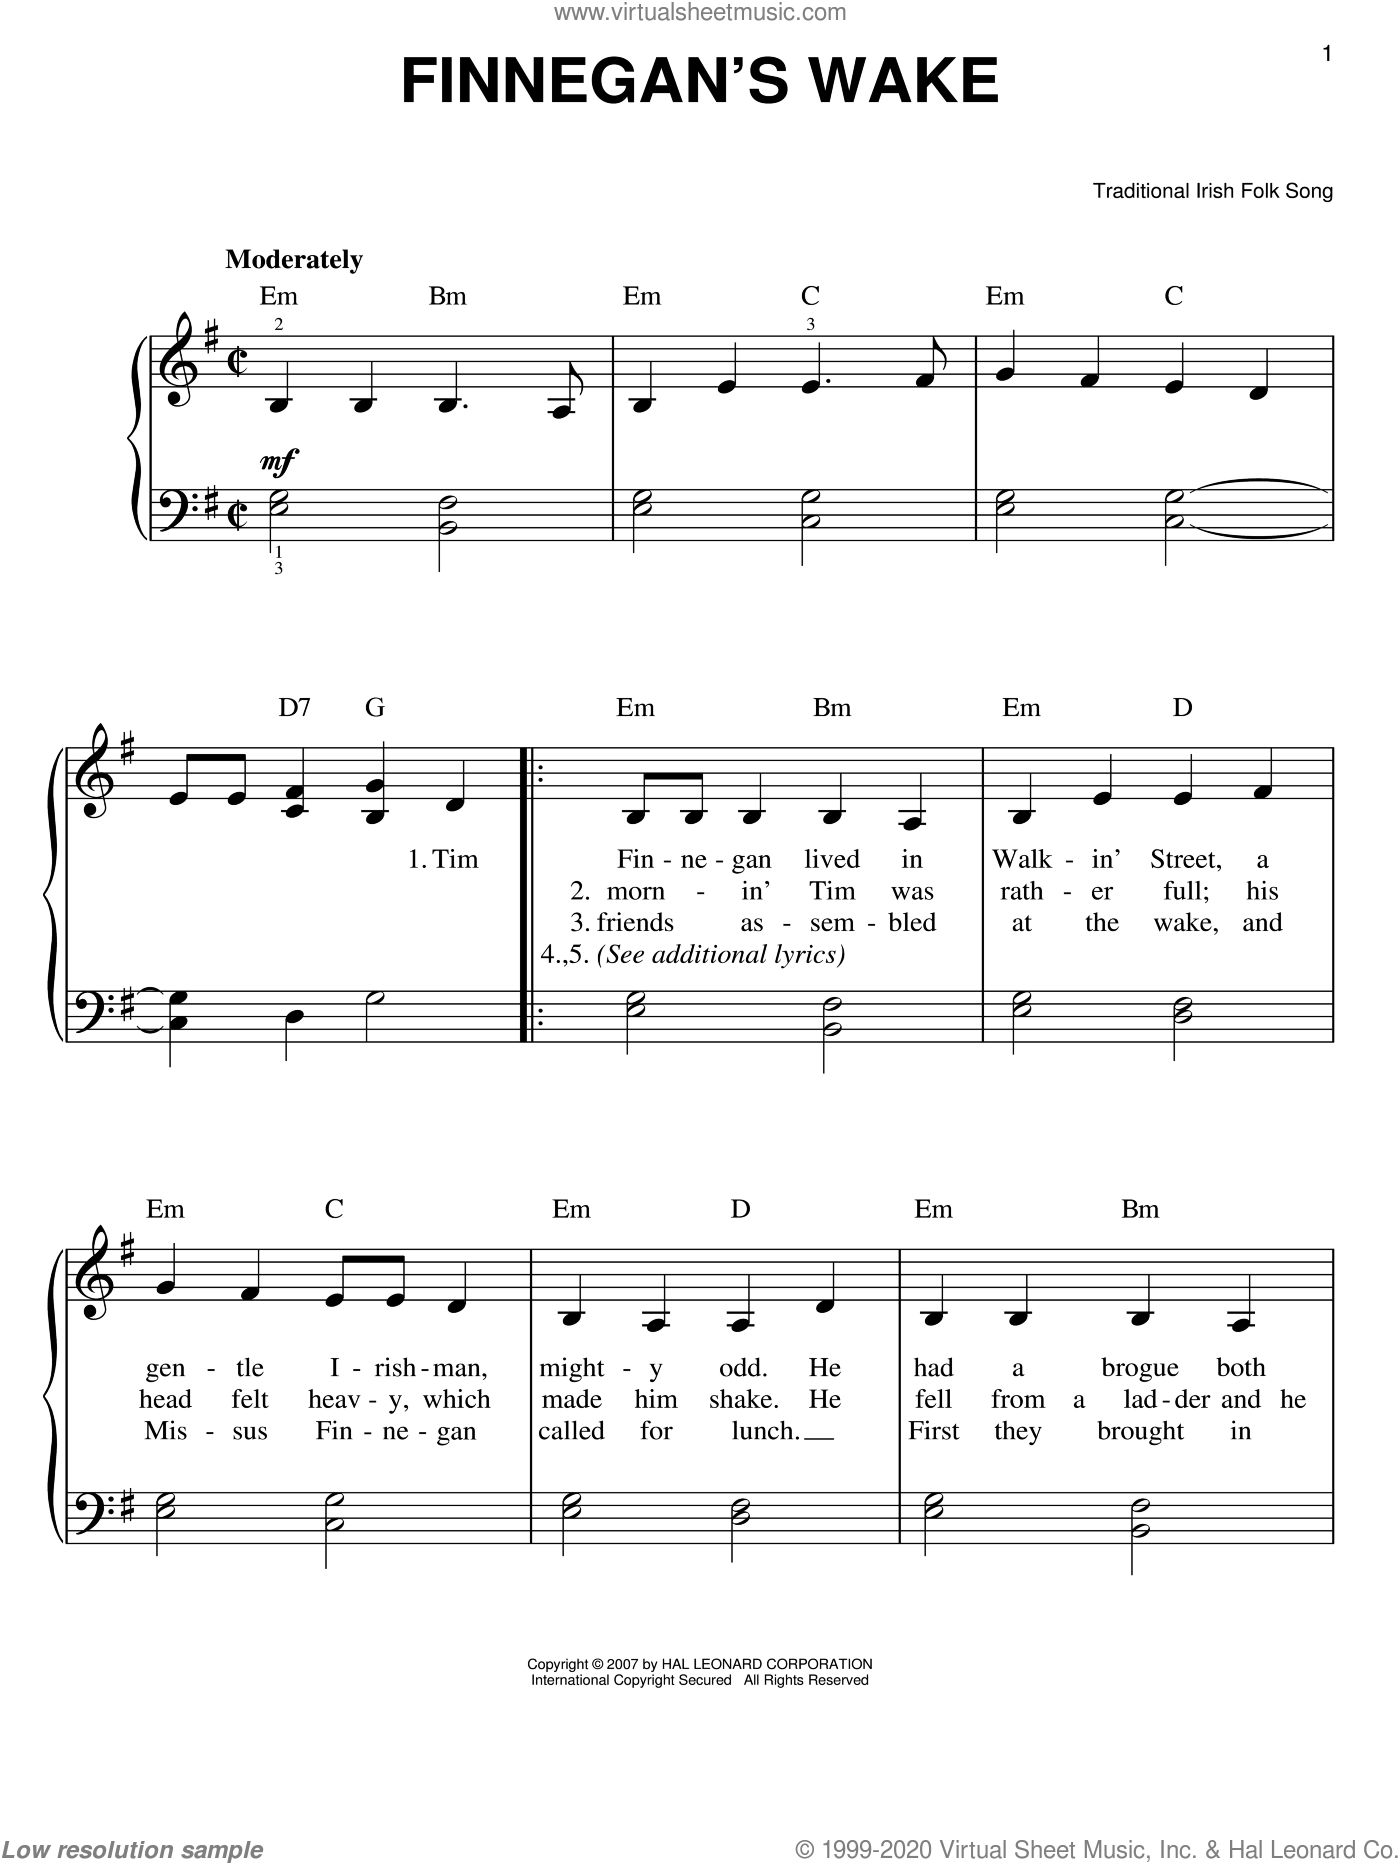 Finnegan's Wake sheet music for piano solo, easy skill level